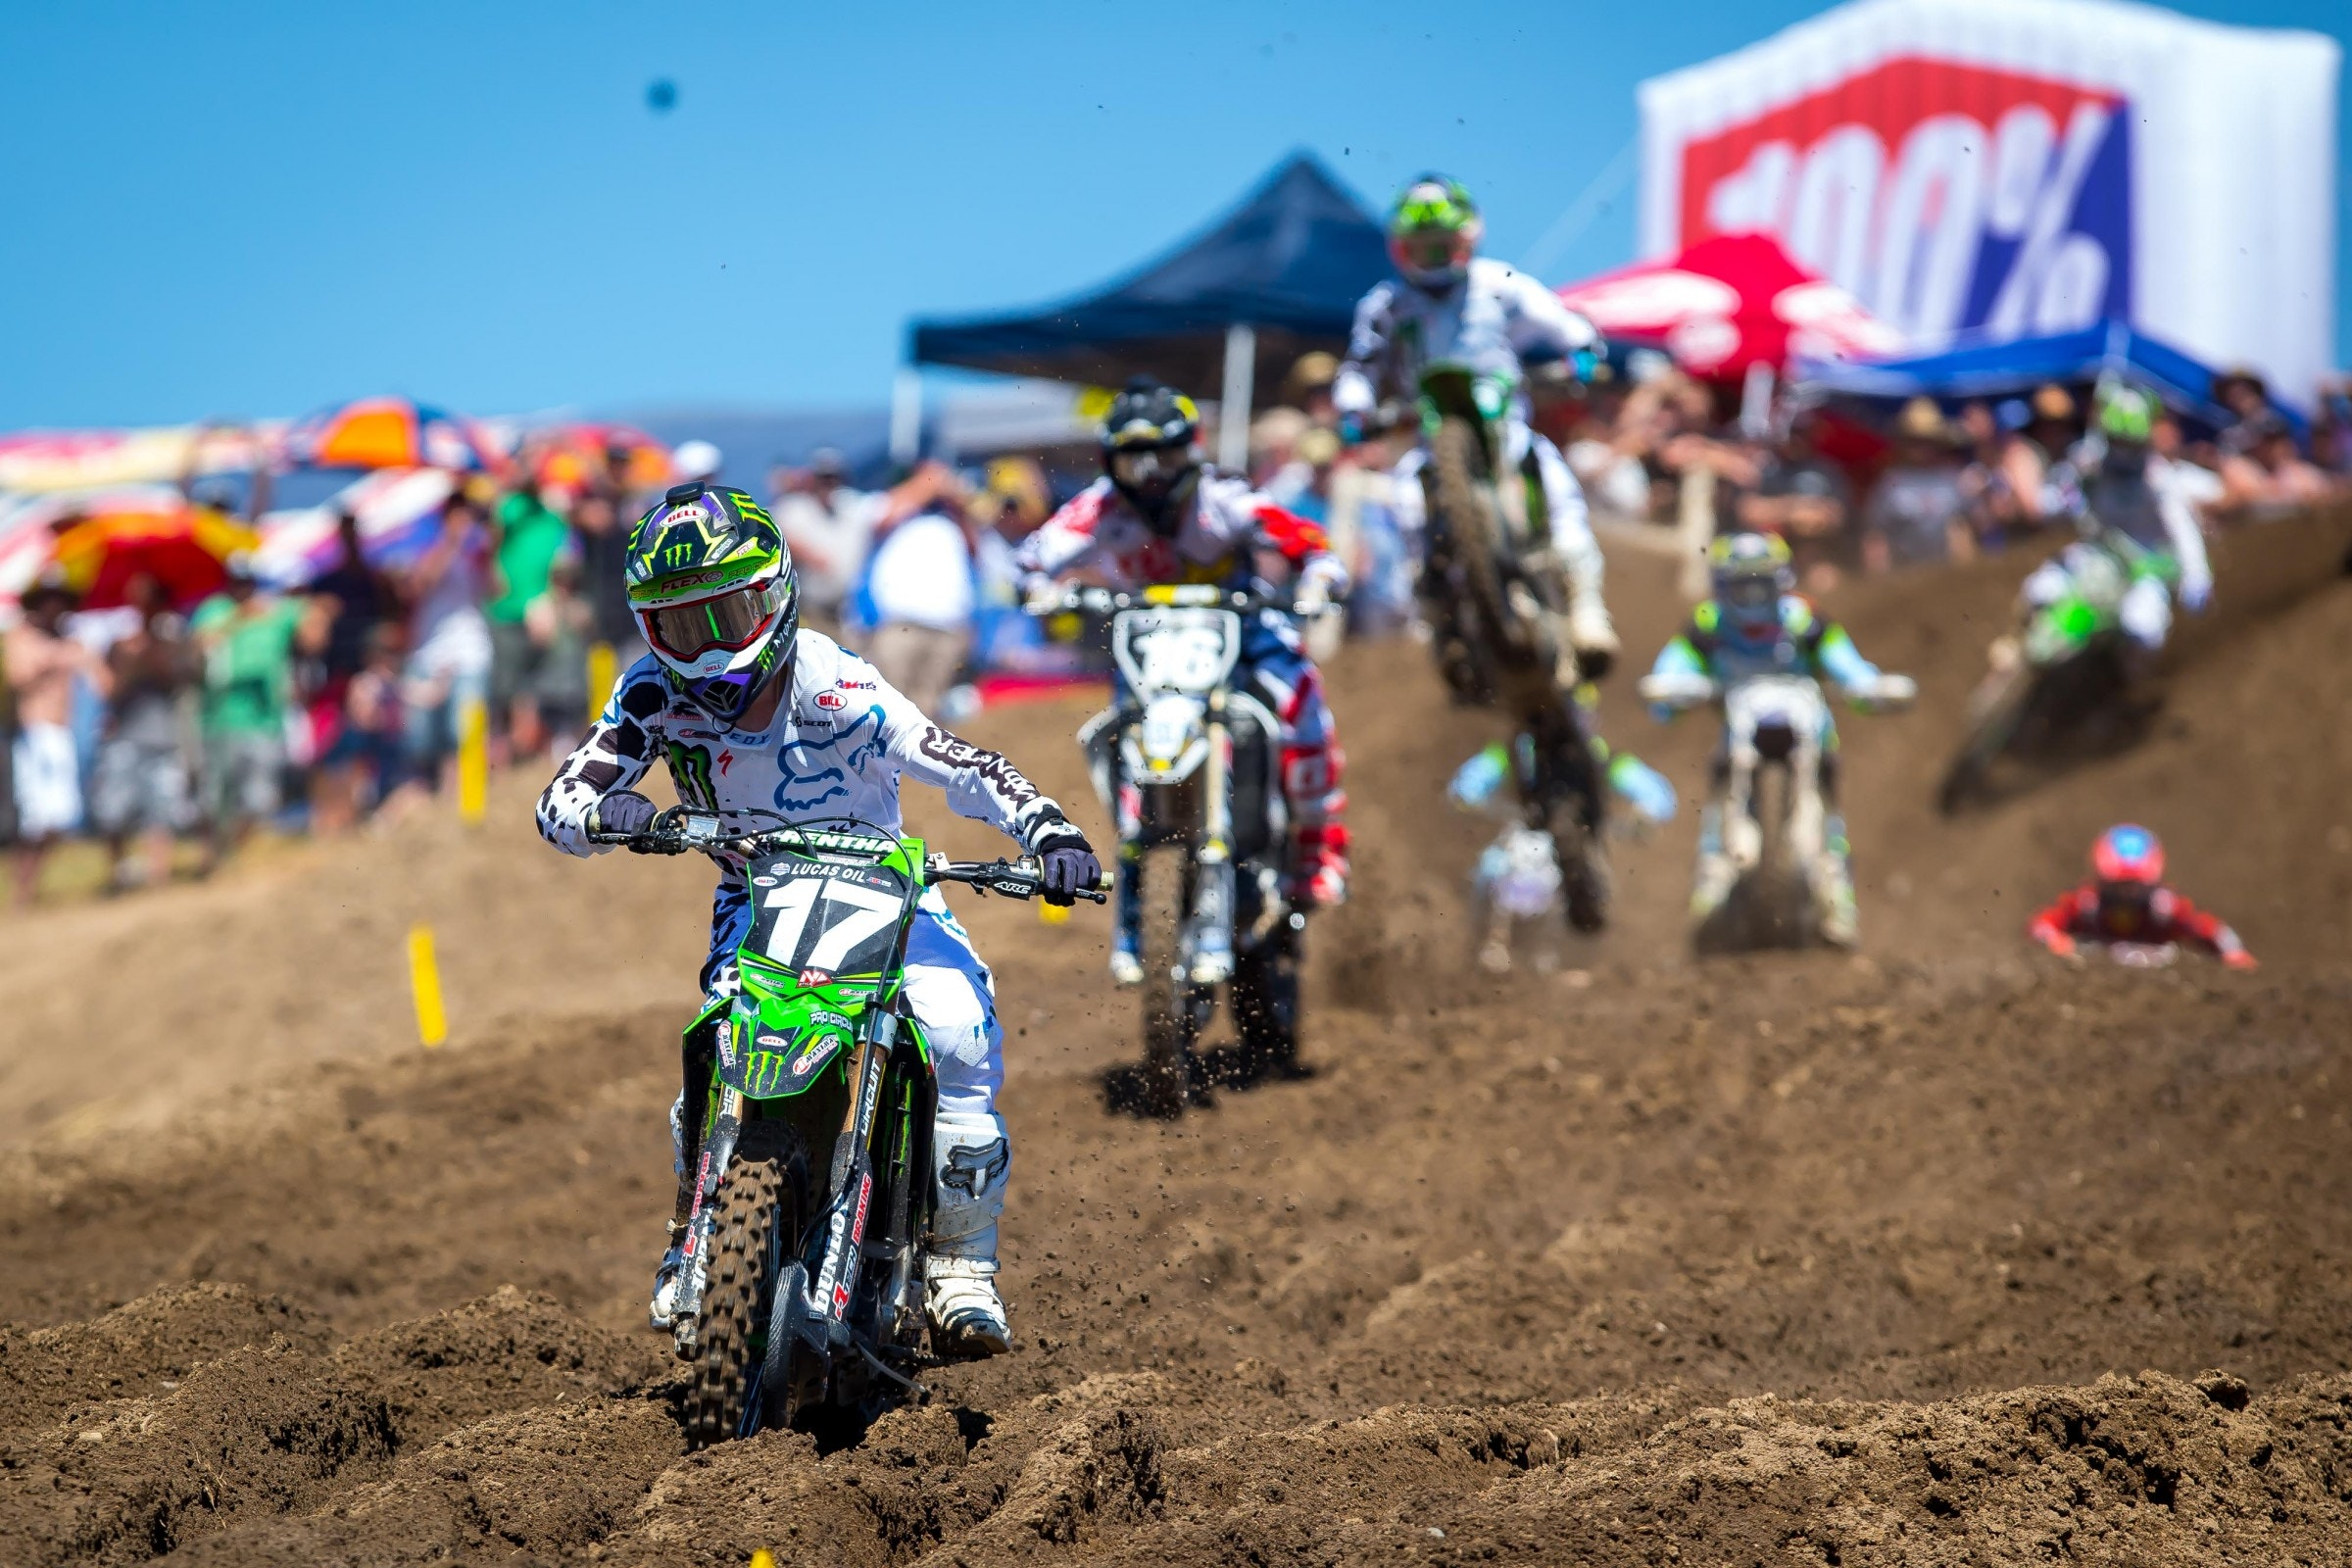 Joey Savatgy initially led the second moto but Zach Osborne took the lead away without incident.